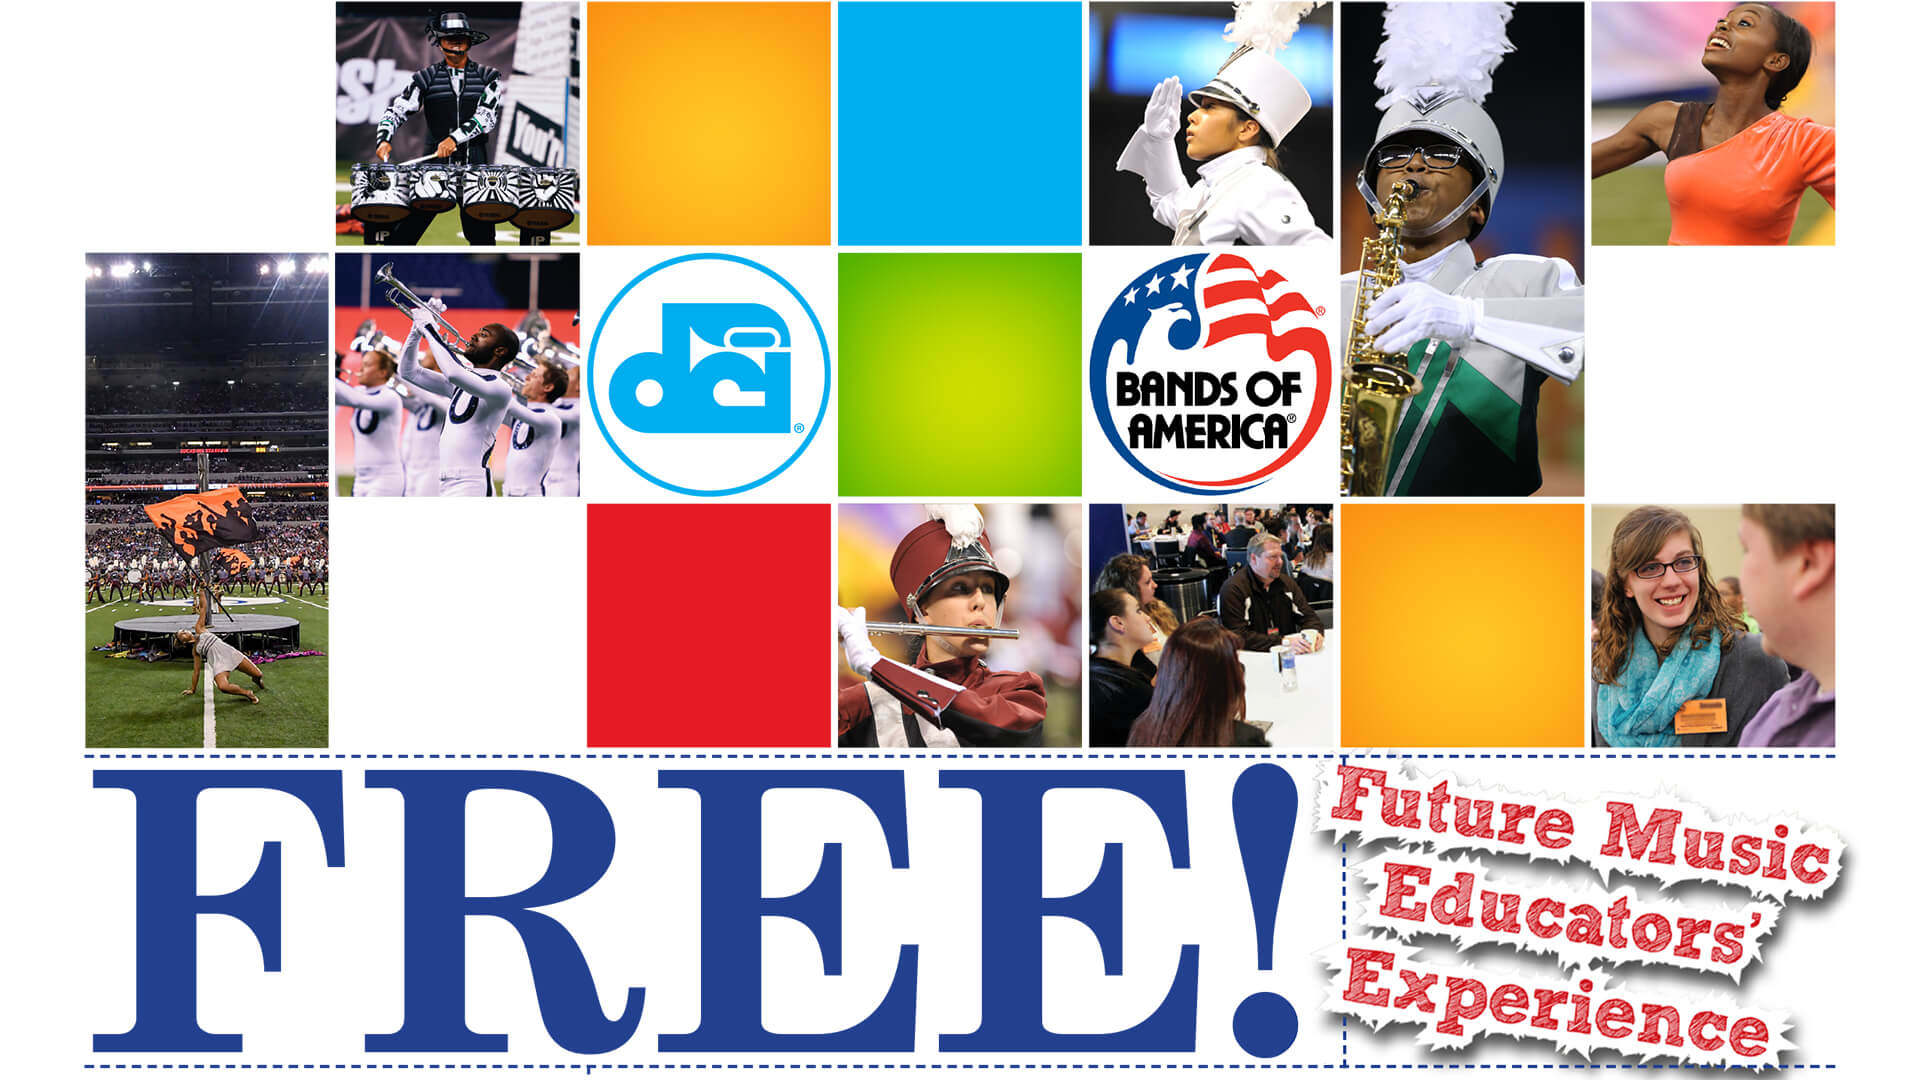 College students: Here's your free ticket to the BOA Grand Nationals